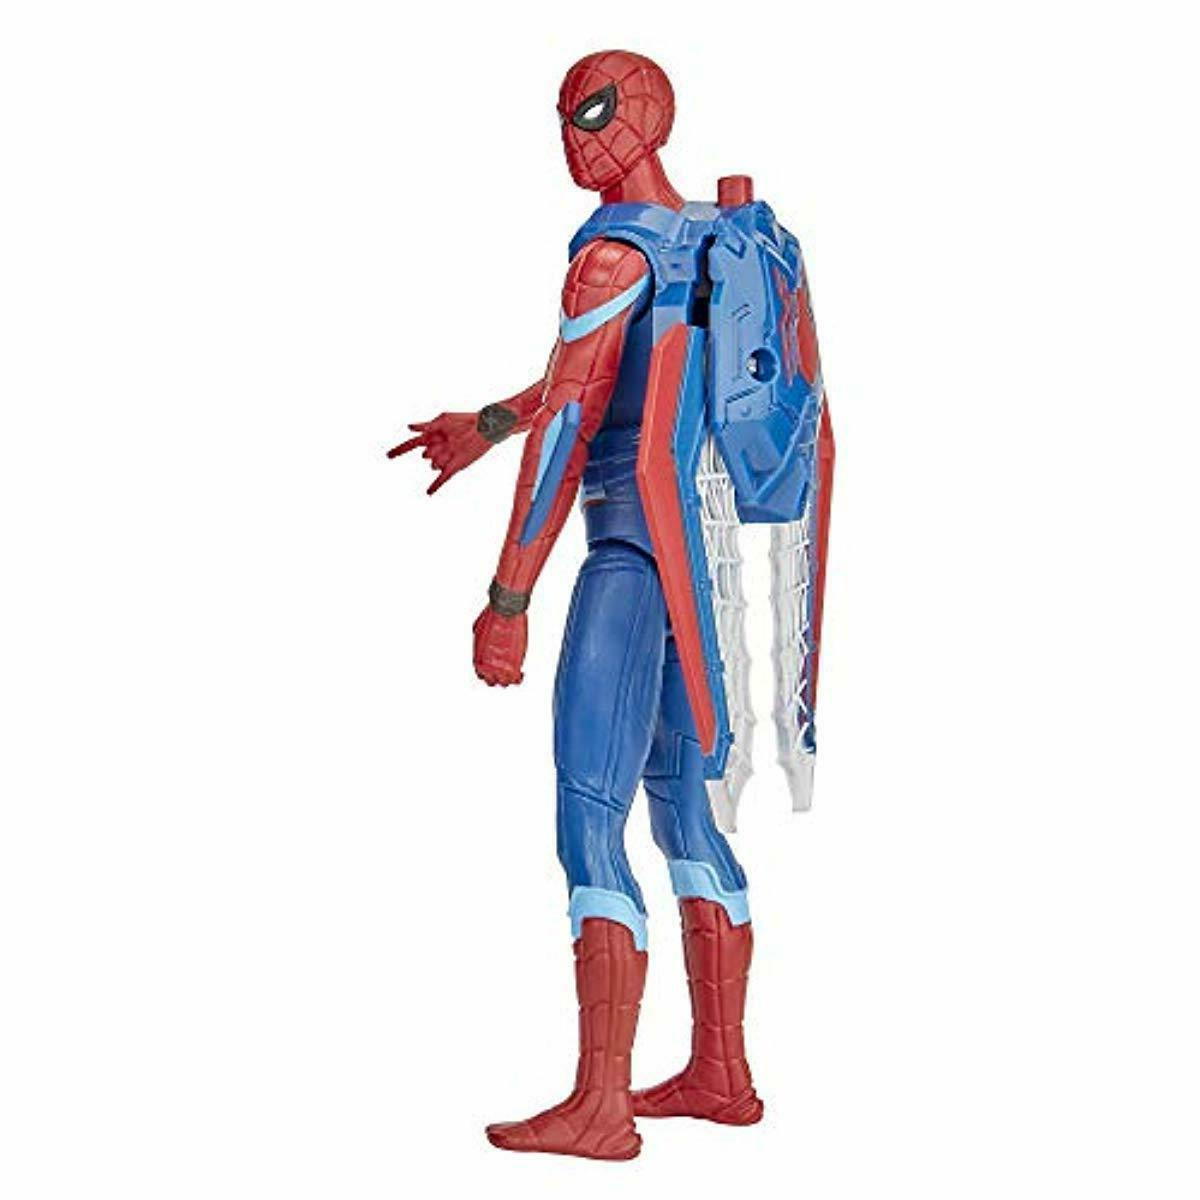 Amazing Action Hot Spider-Man Figure 12 Inch Kids Toys